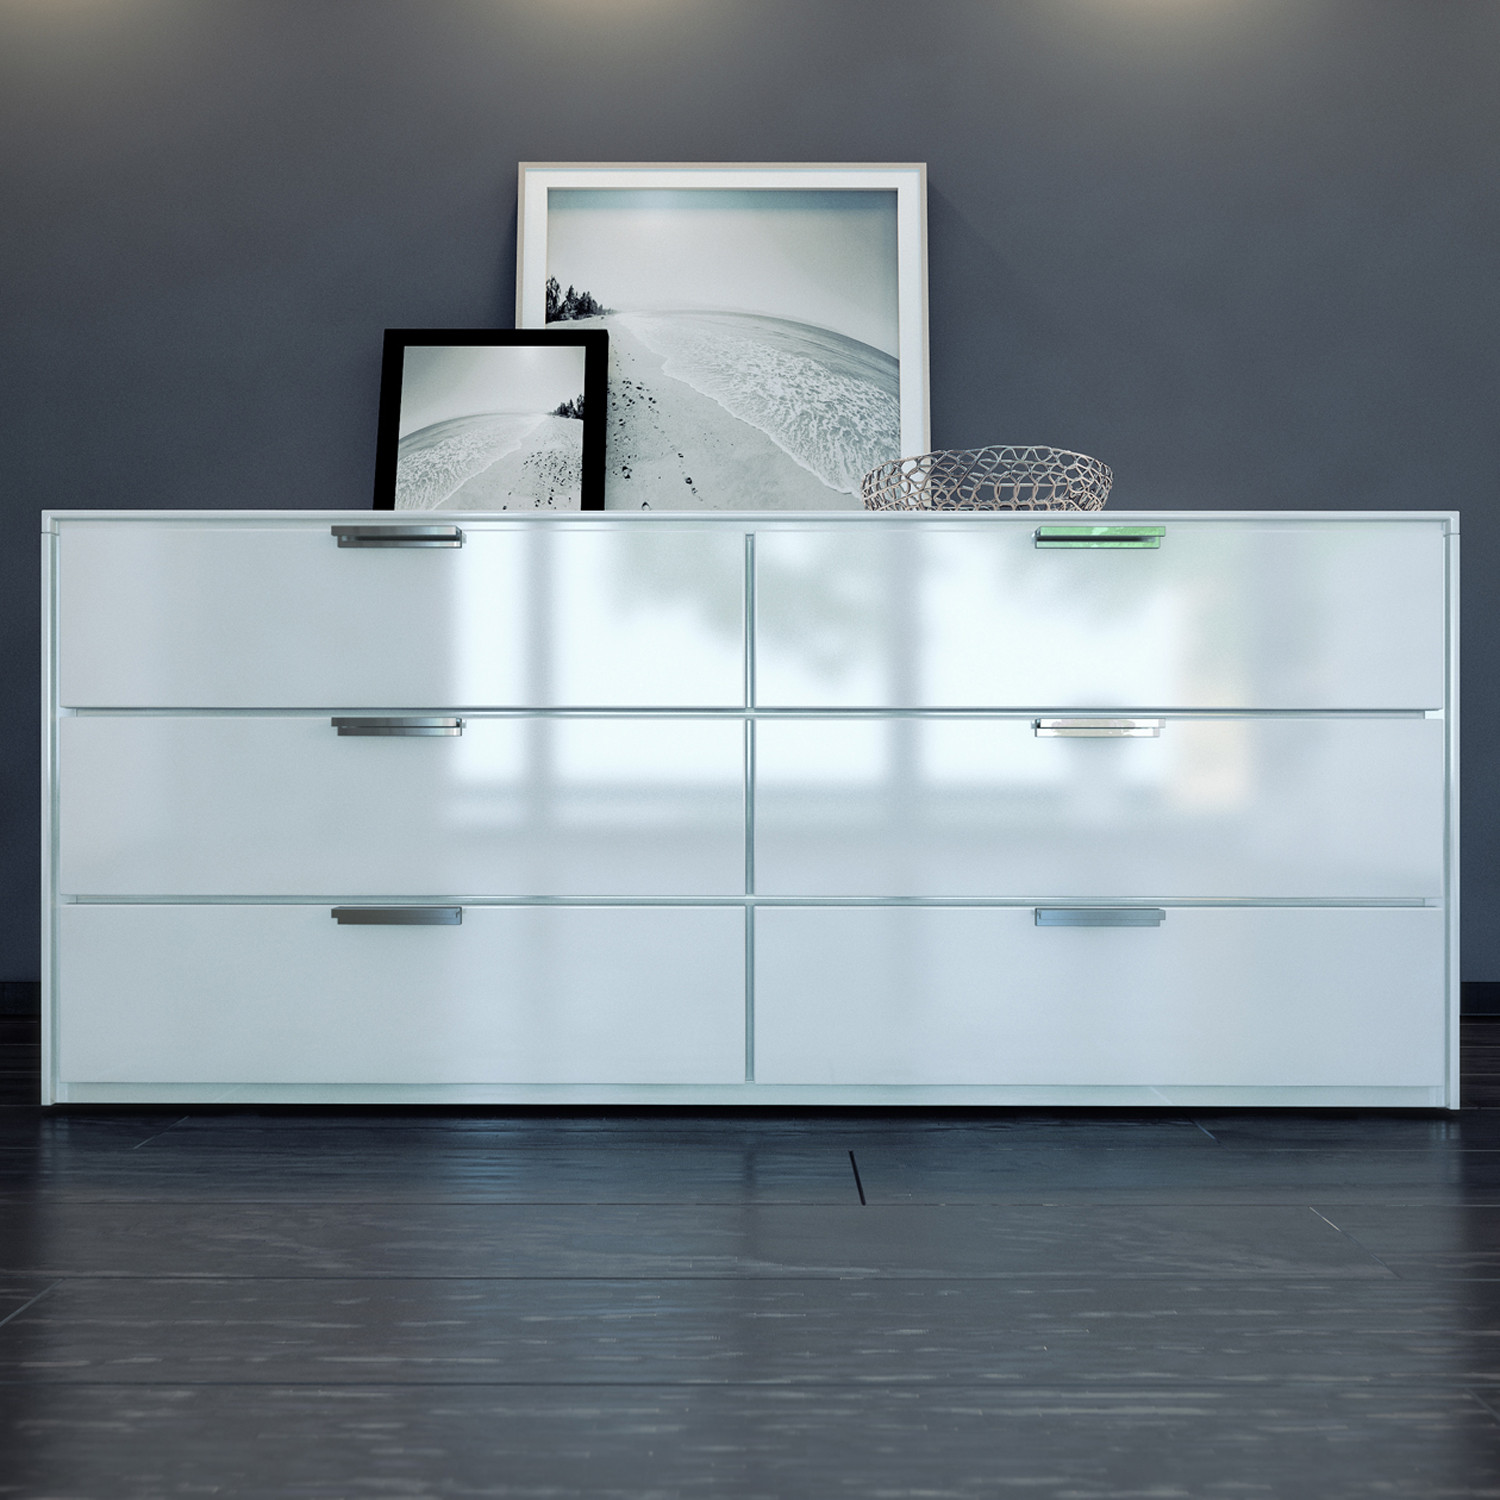 https://www.touchofmodern.com/sales/modloft-bedroom-a1508431-2a5a-4fd9-a661-62a39892e635/thompson-dresser?share_invite_token=WQ3PD6V0